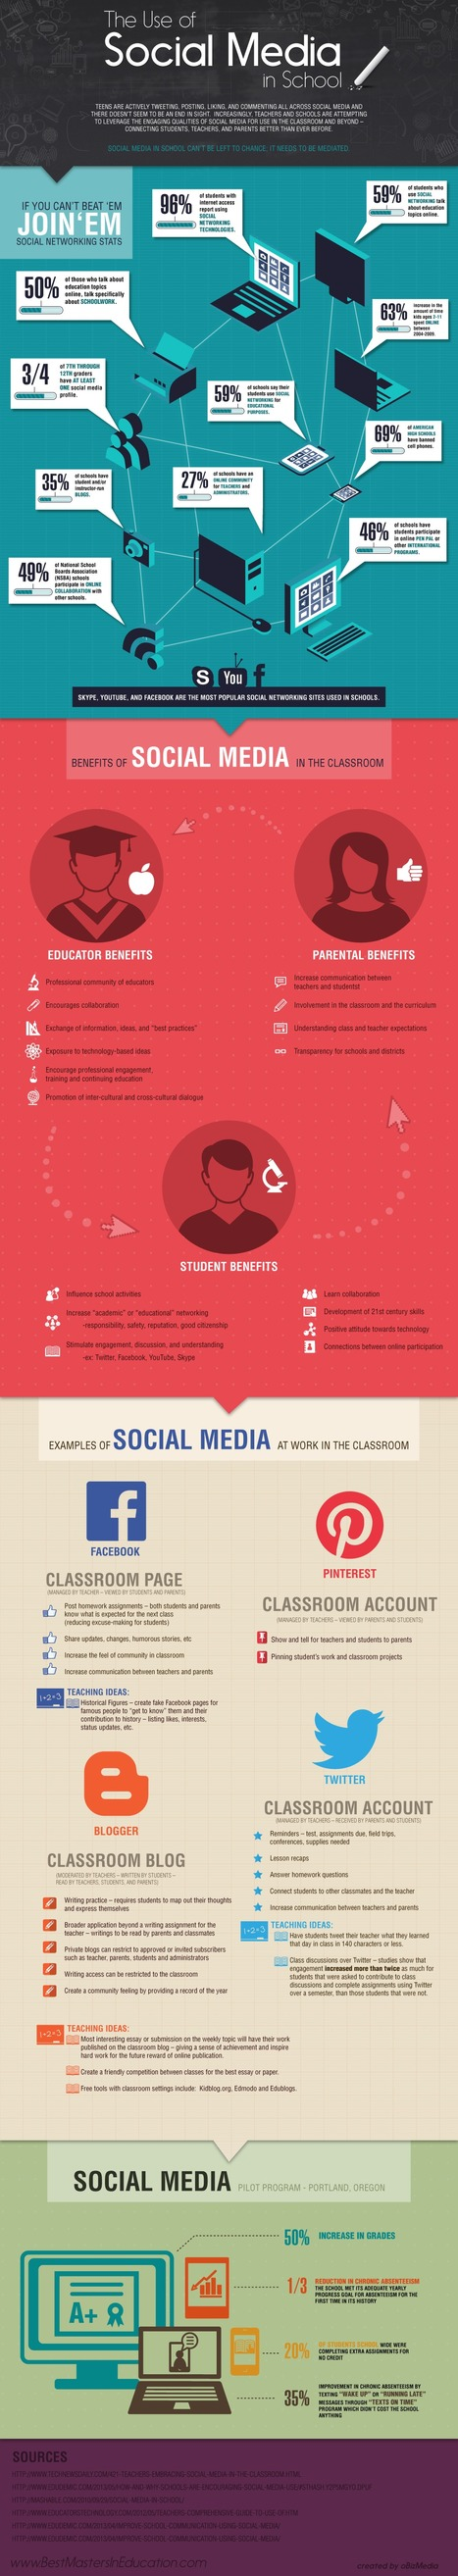 Social Media 101: Is There a Place For Social Media in Classrooms? [Infographic] | John Dewey | Scoop.it